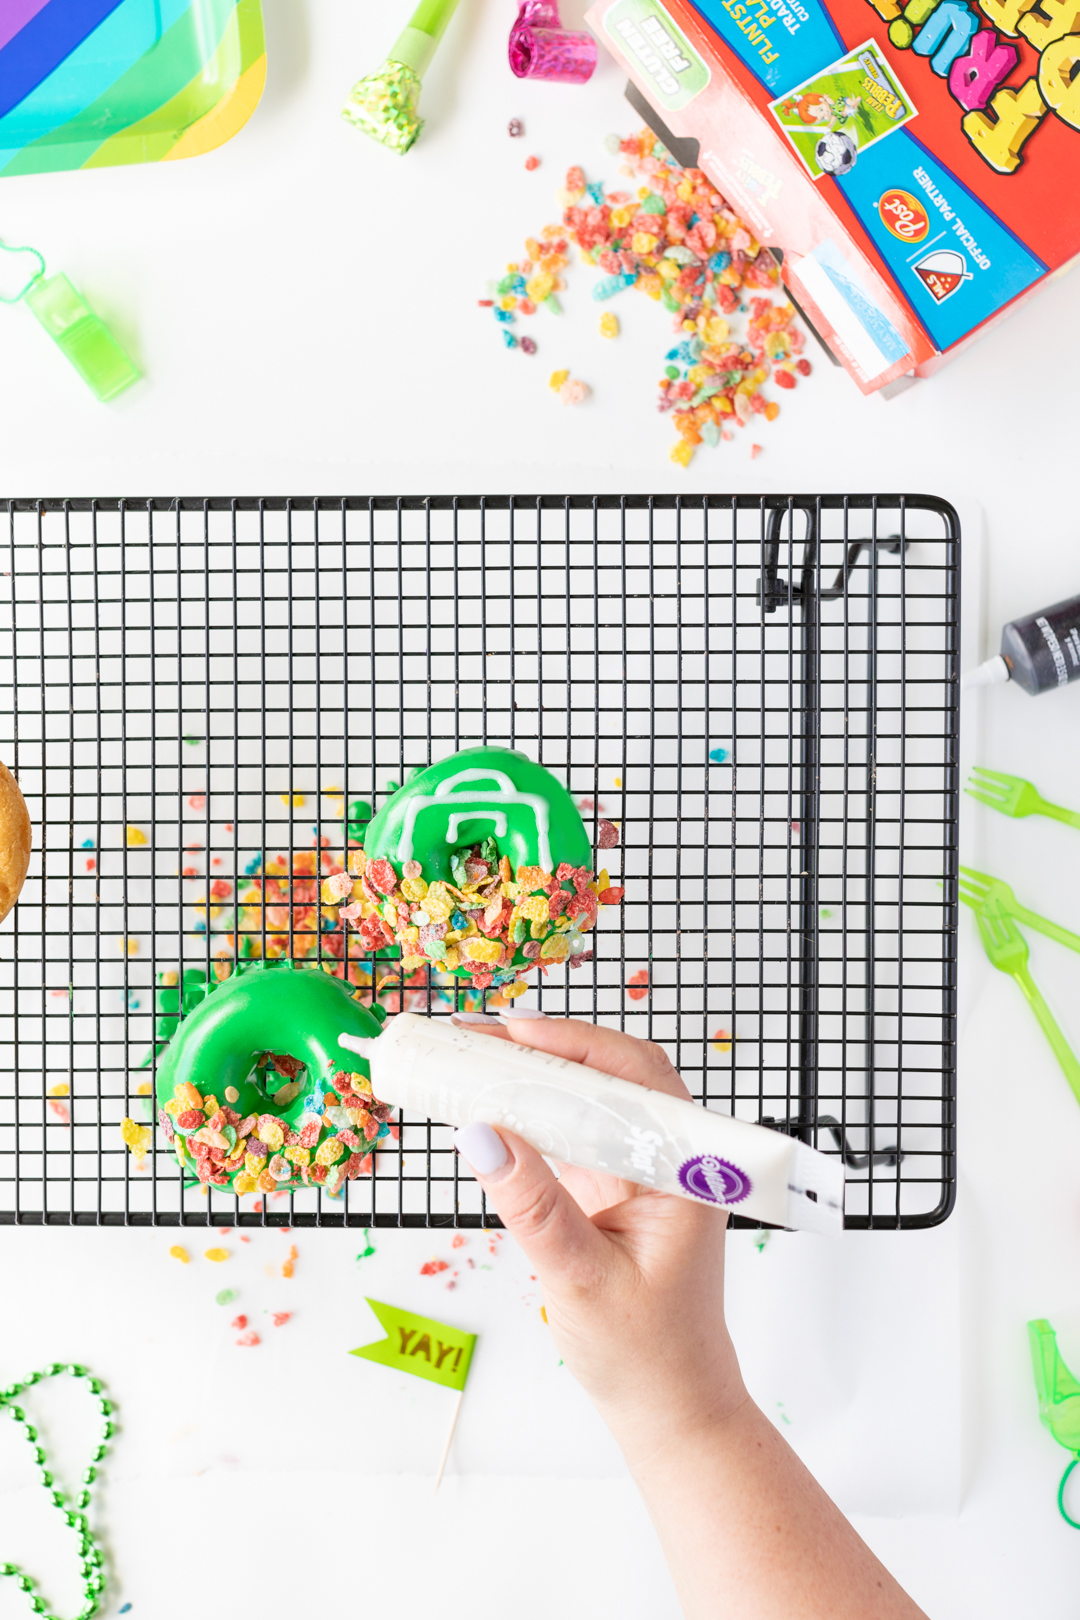 Decorating Donuts with colorful cereal and icing.